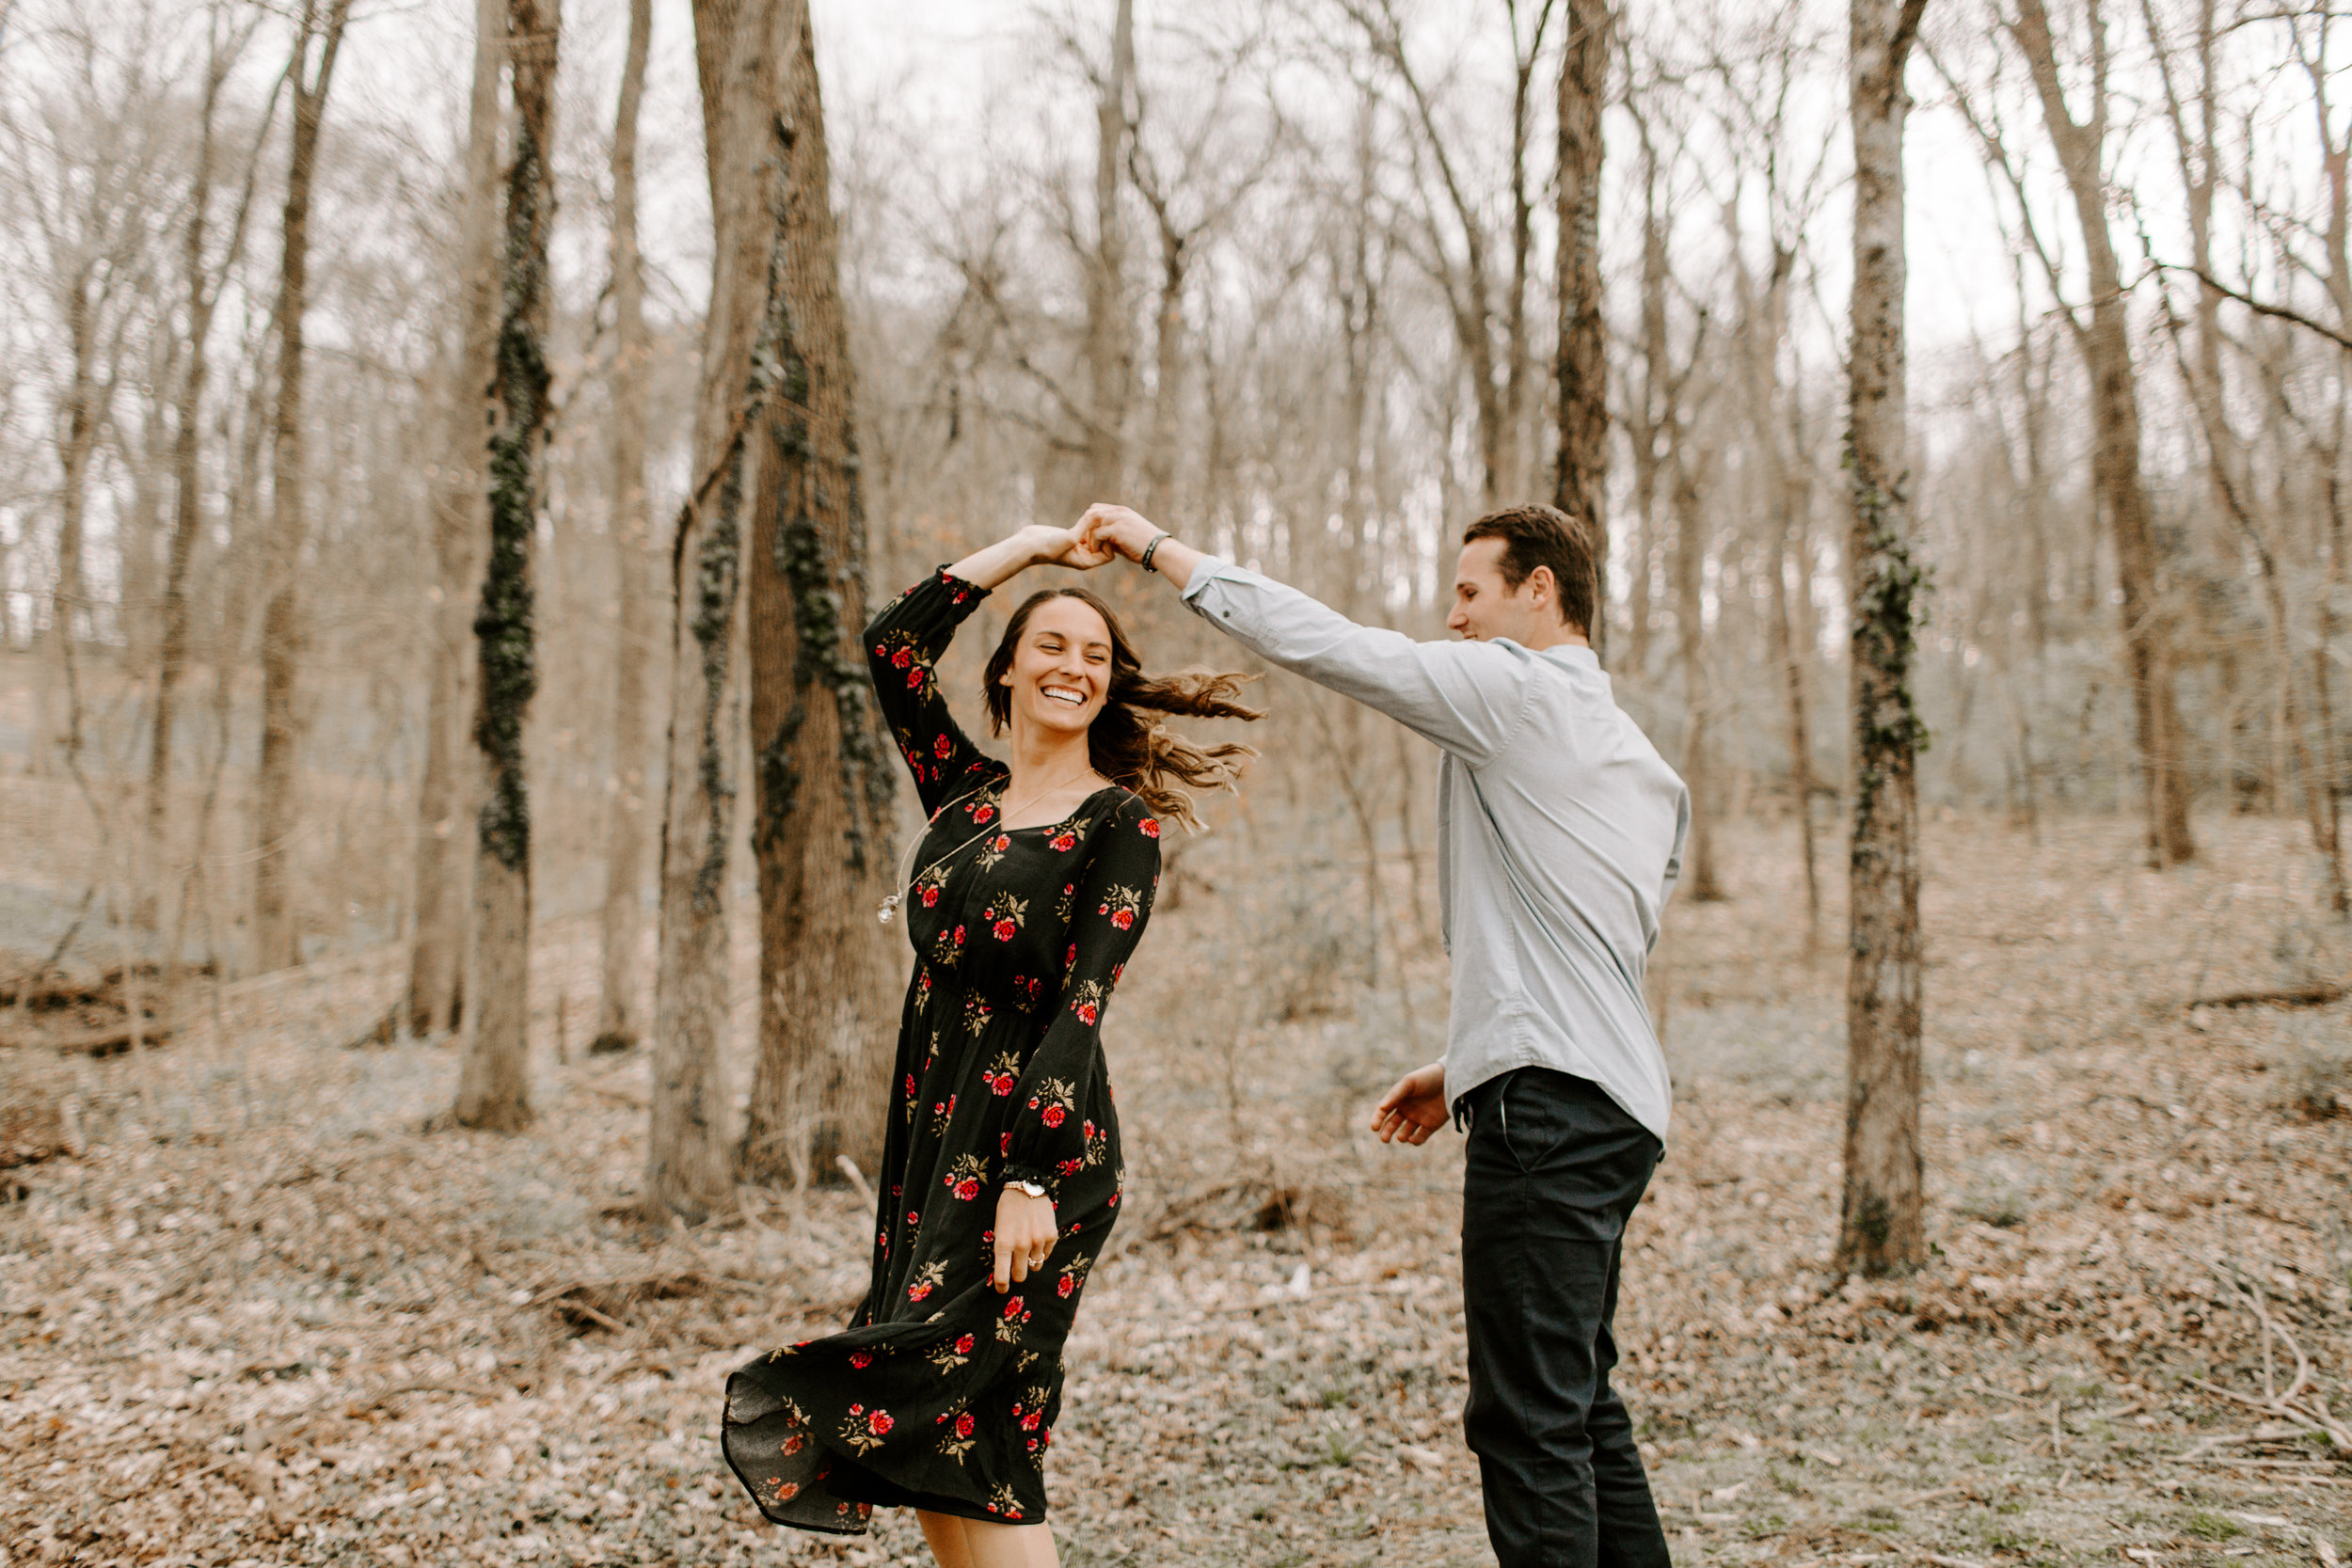 2018.03.16_kayleematt_nashville_engagement_elissavossphotography_previews_05.jpg